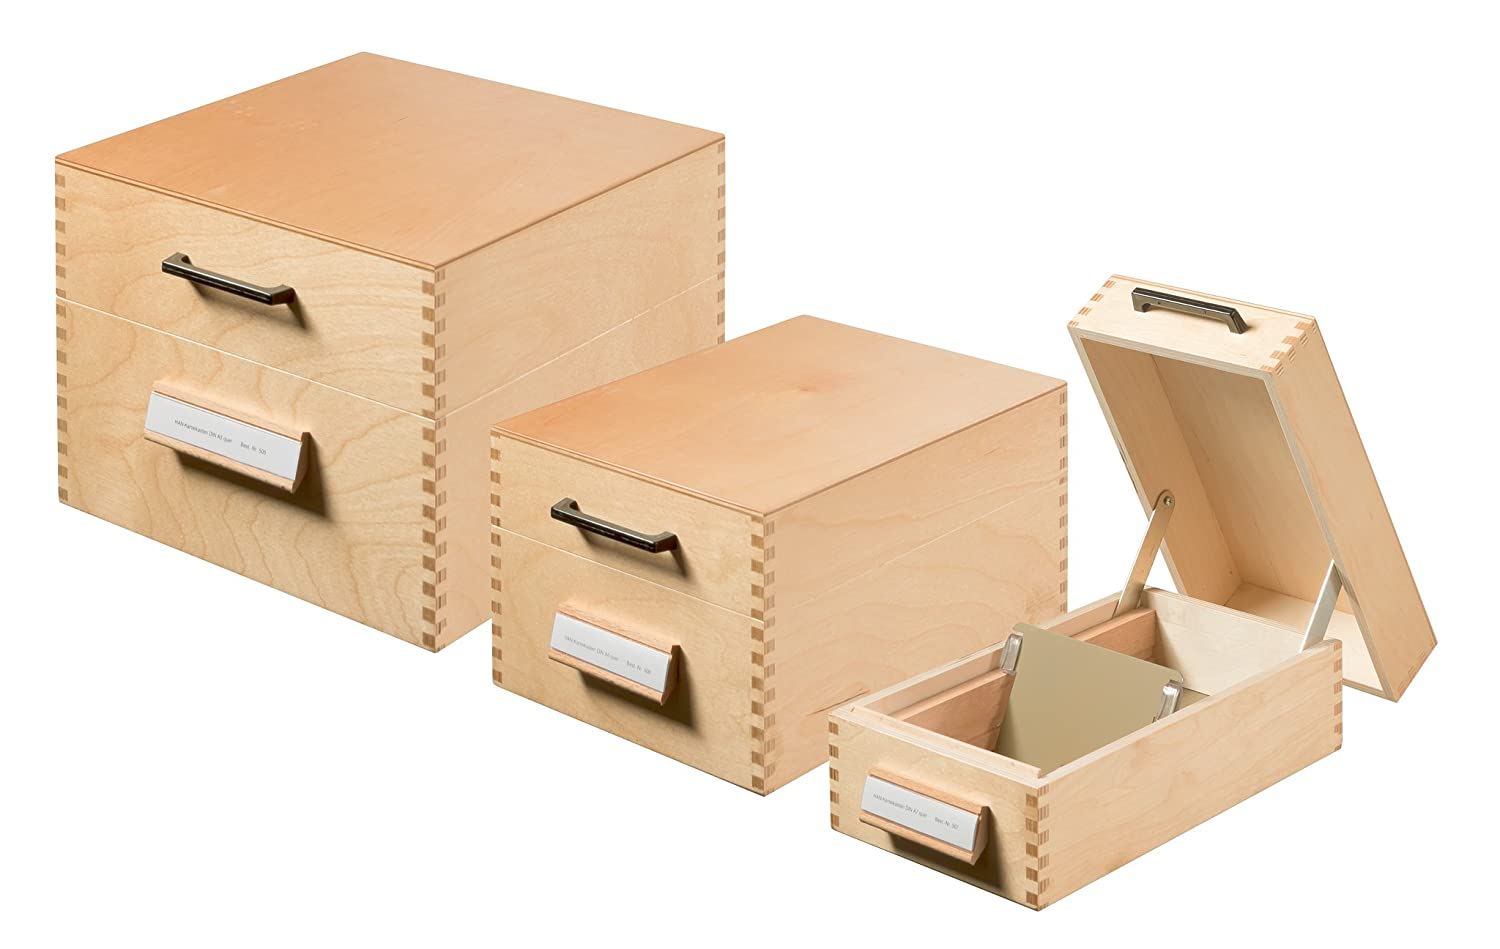 Amazon.com : HAN 507, Wooden Card Filing Box A7 Landscape, for 900 Cards, Metal Base/Support Plate, Natural Wood : Office Products